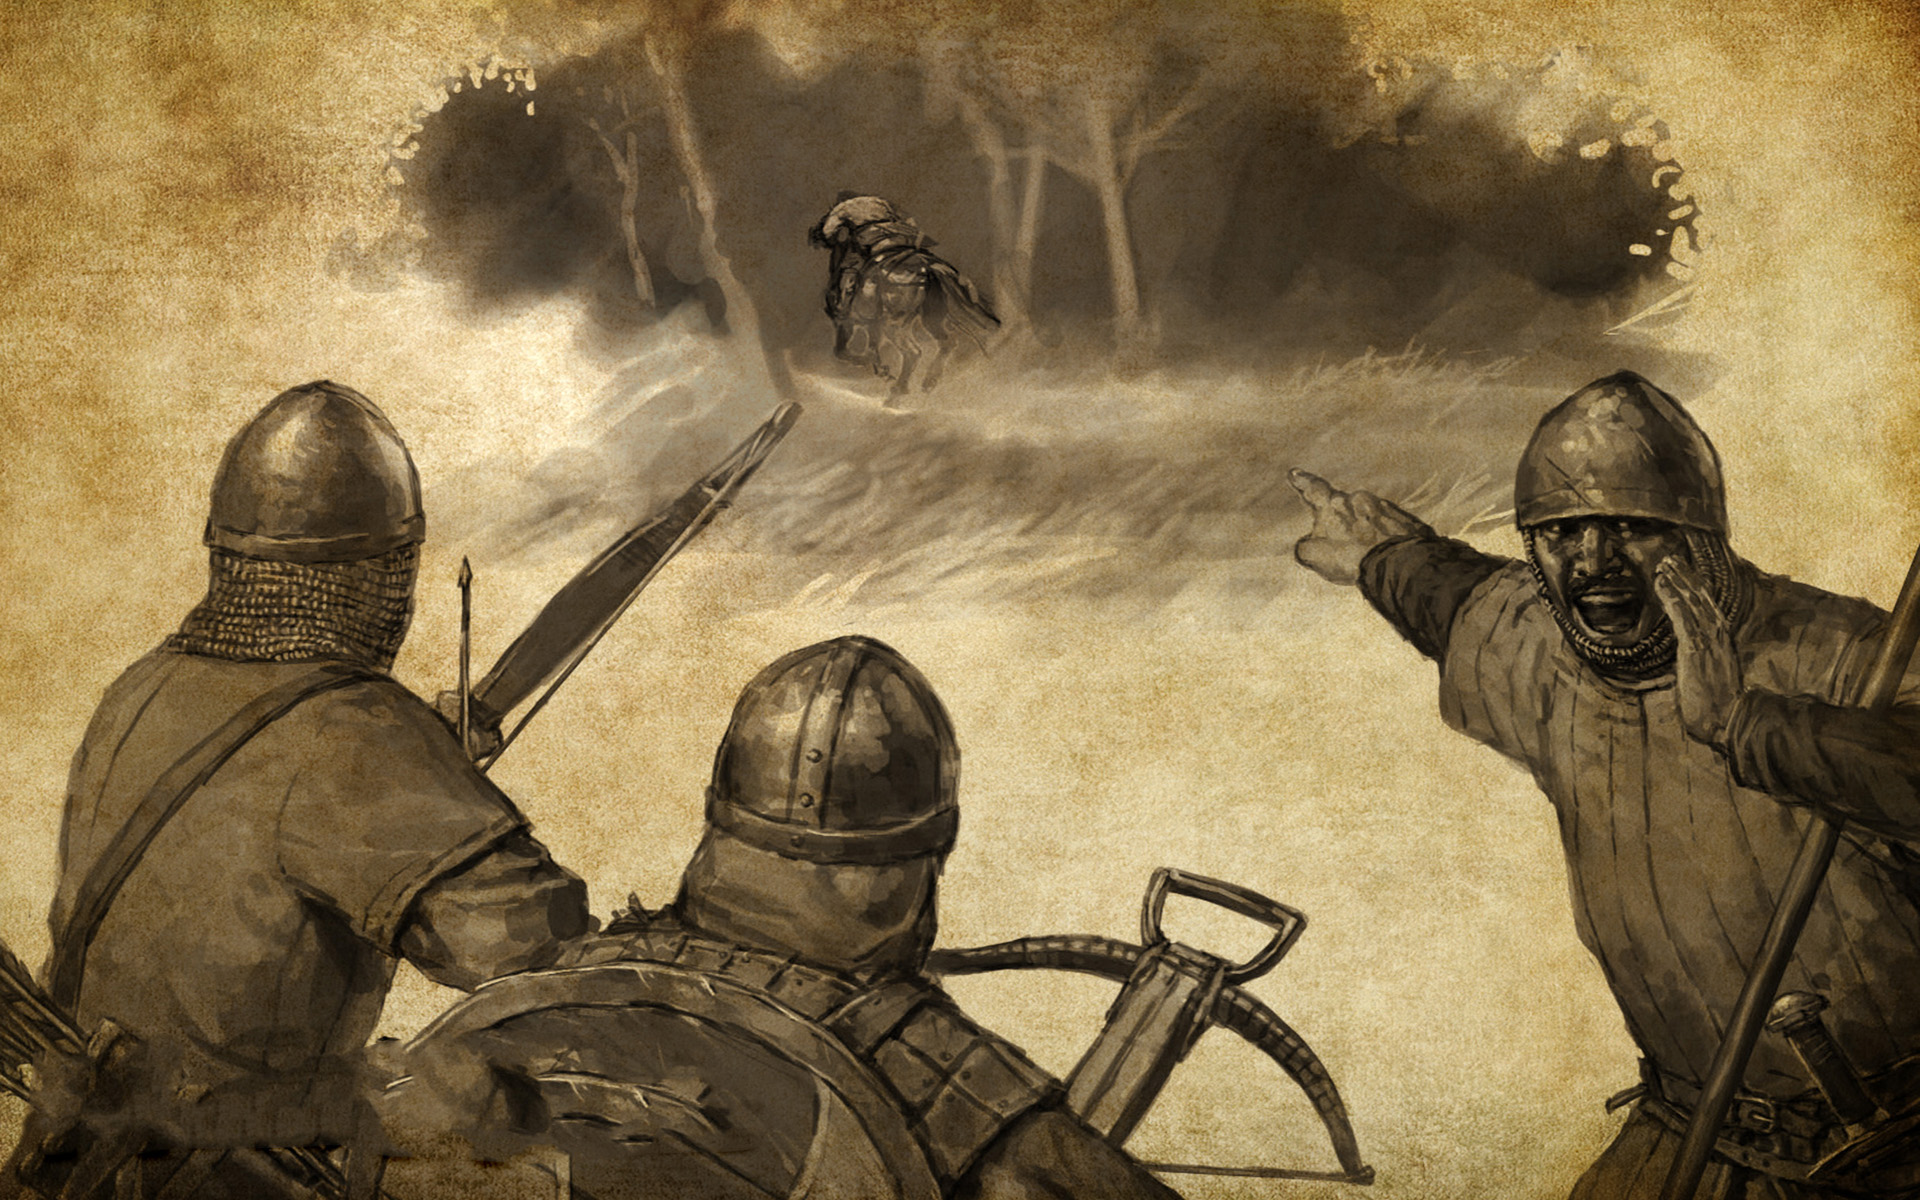 Soldiers archers mount amp blade artwork medieval wallpaper backgroundMedieval Archery Wallpaper